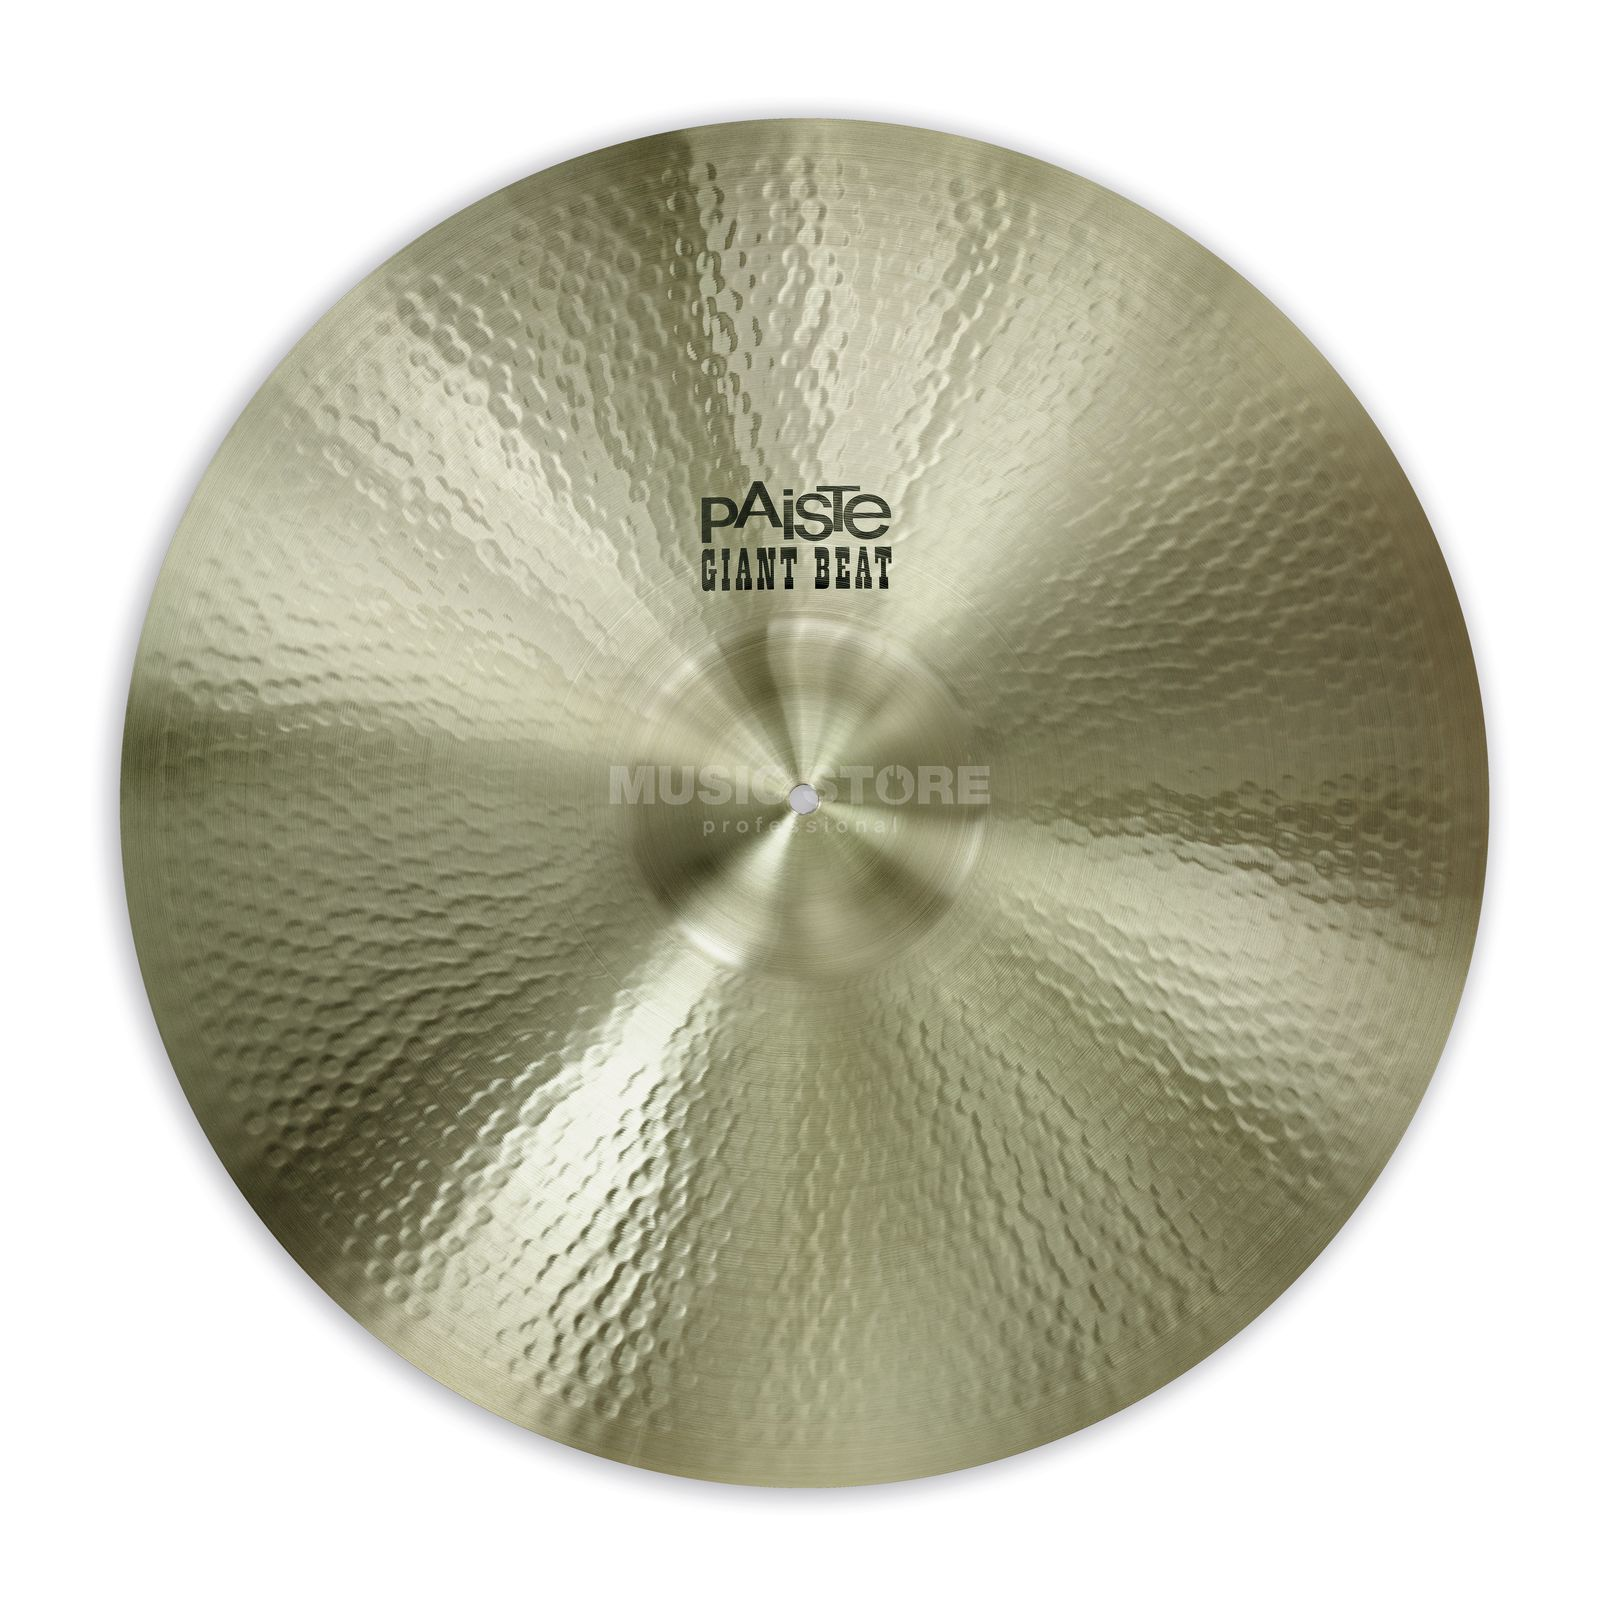 "Paiste Giant Beat Single, 26"" Produktbillede"